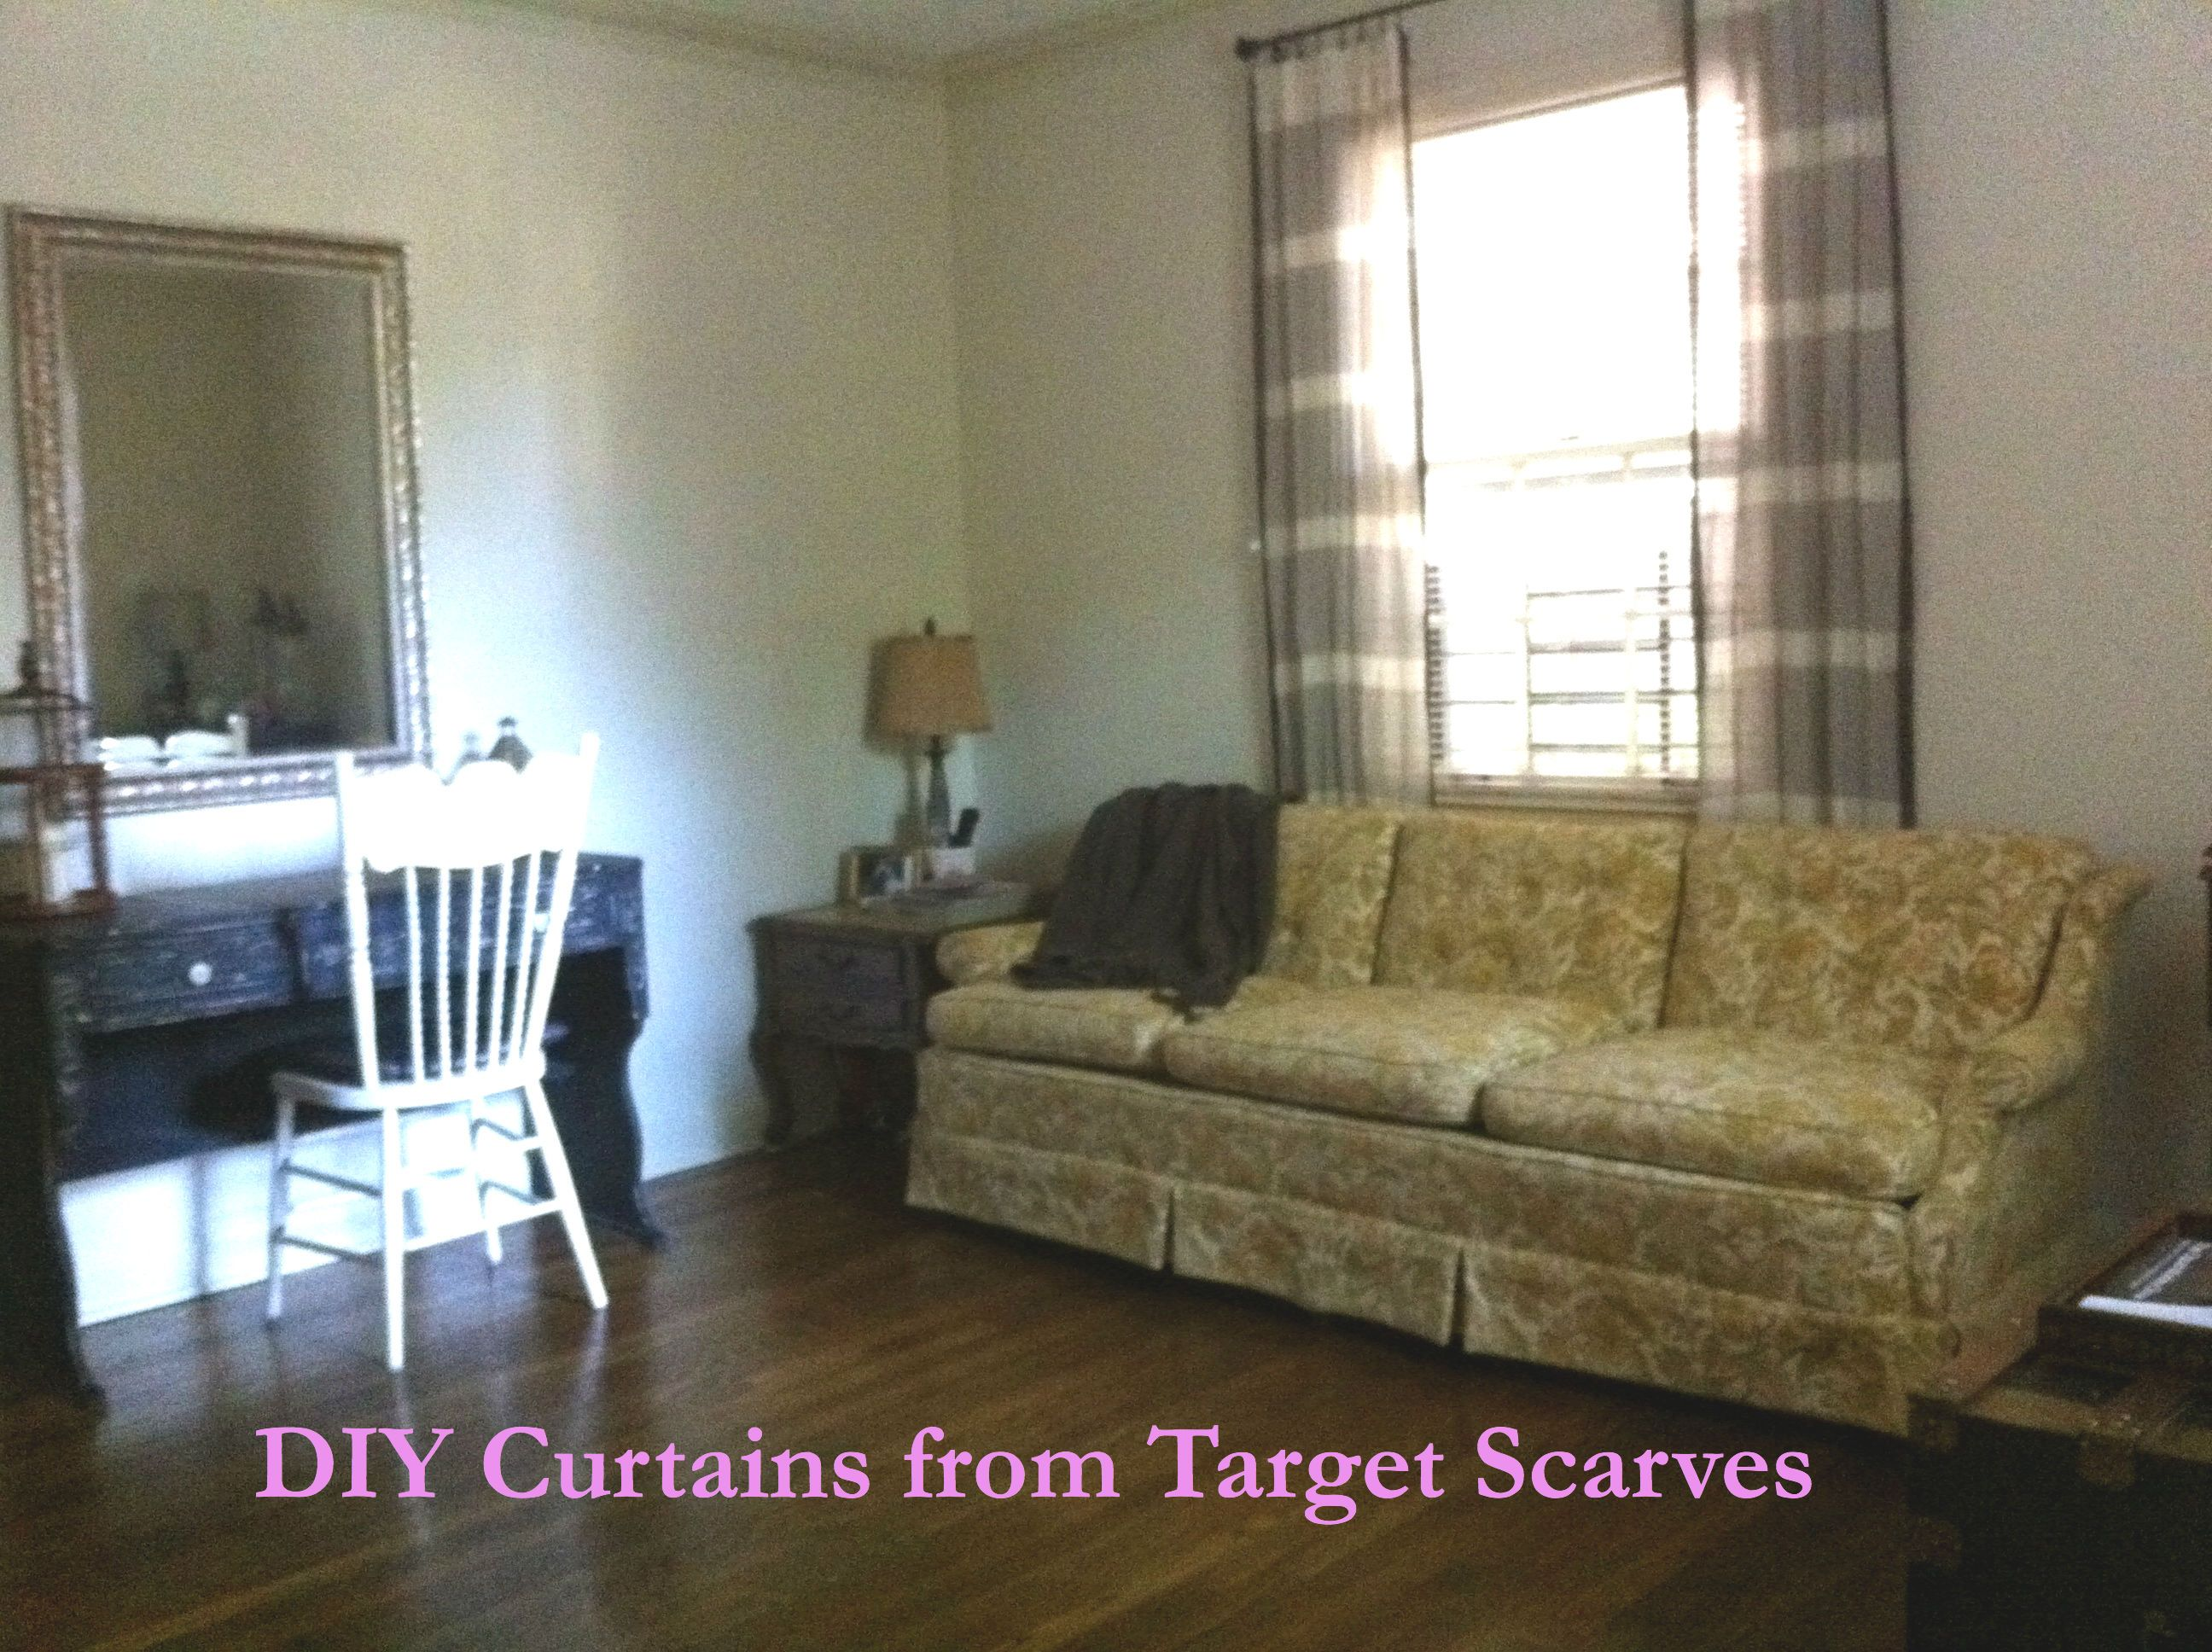 Turn scarves from Target into breezy curtains | Wall decor ...